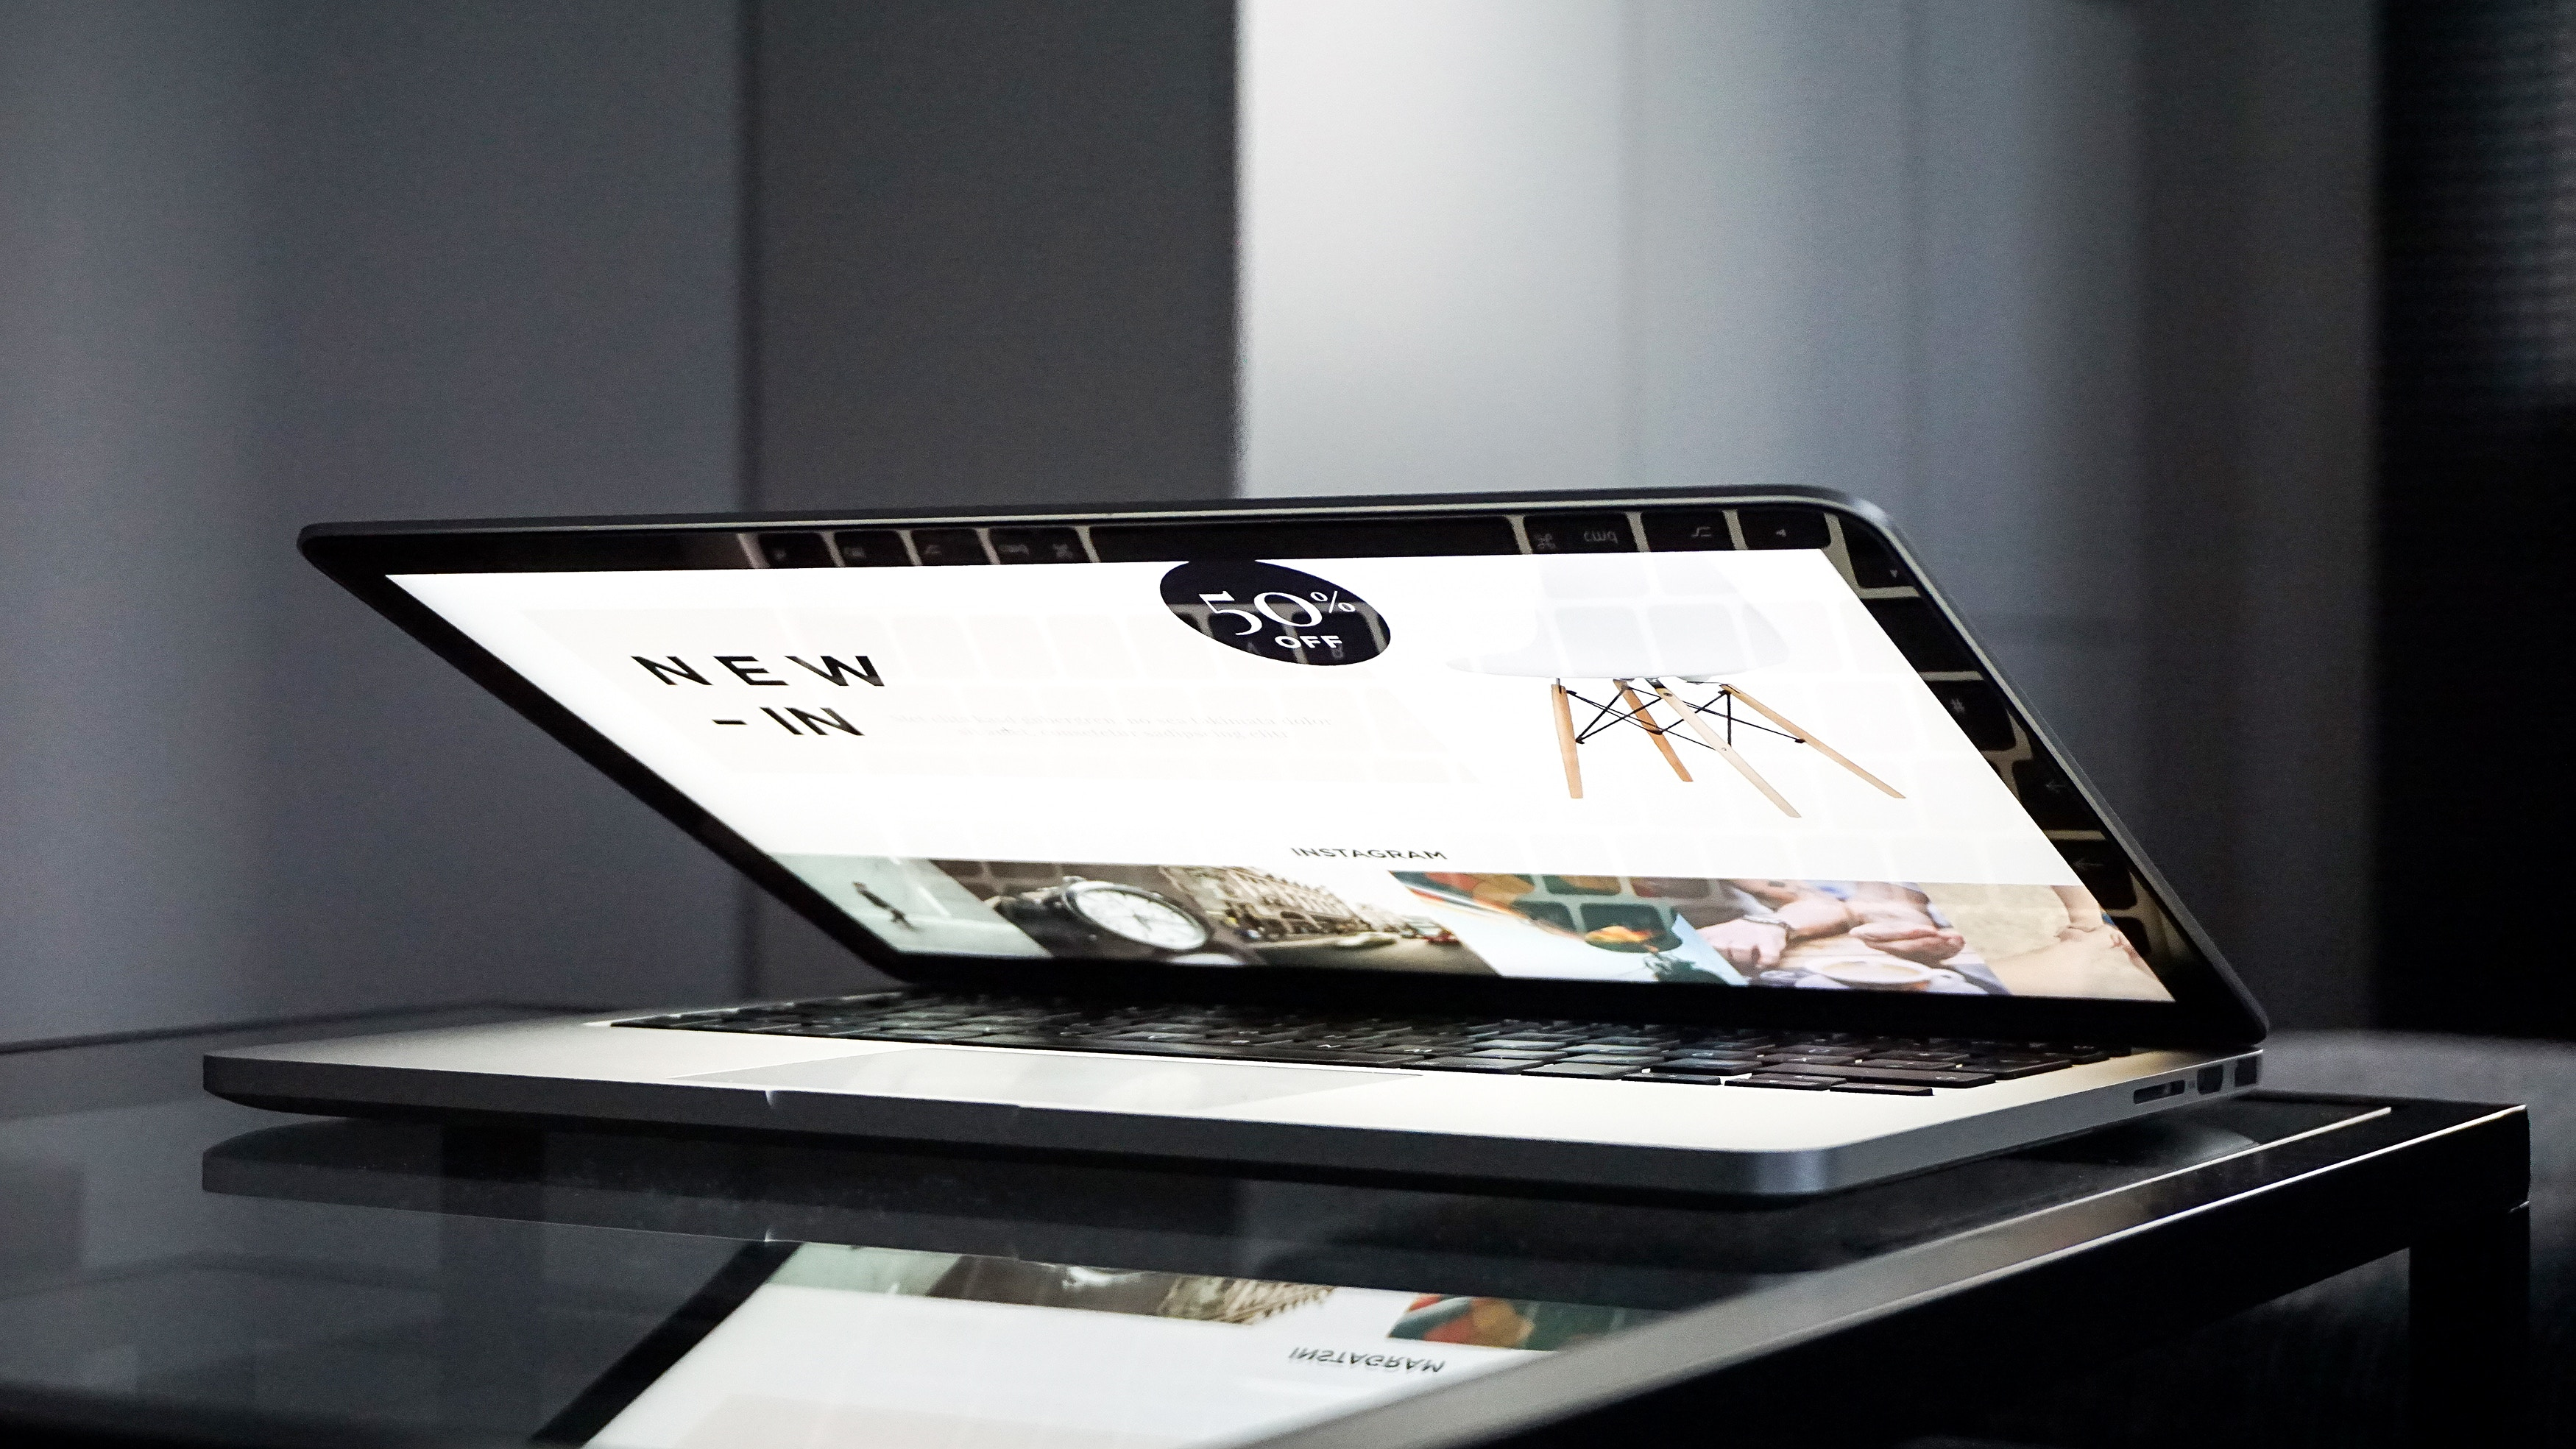 Web Design 1 We live in the digital age, which is why it's important for your brand to have a smoothly operating website that accomplishes exactly what you need and communicates well to your audience.